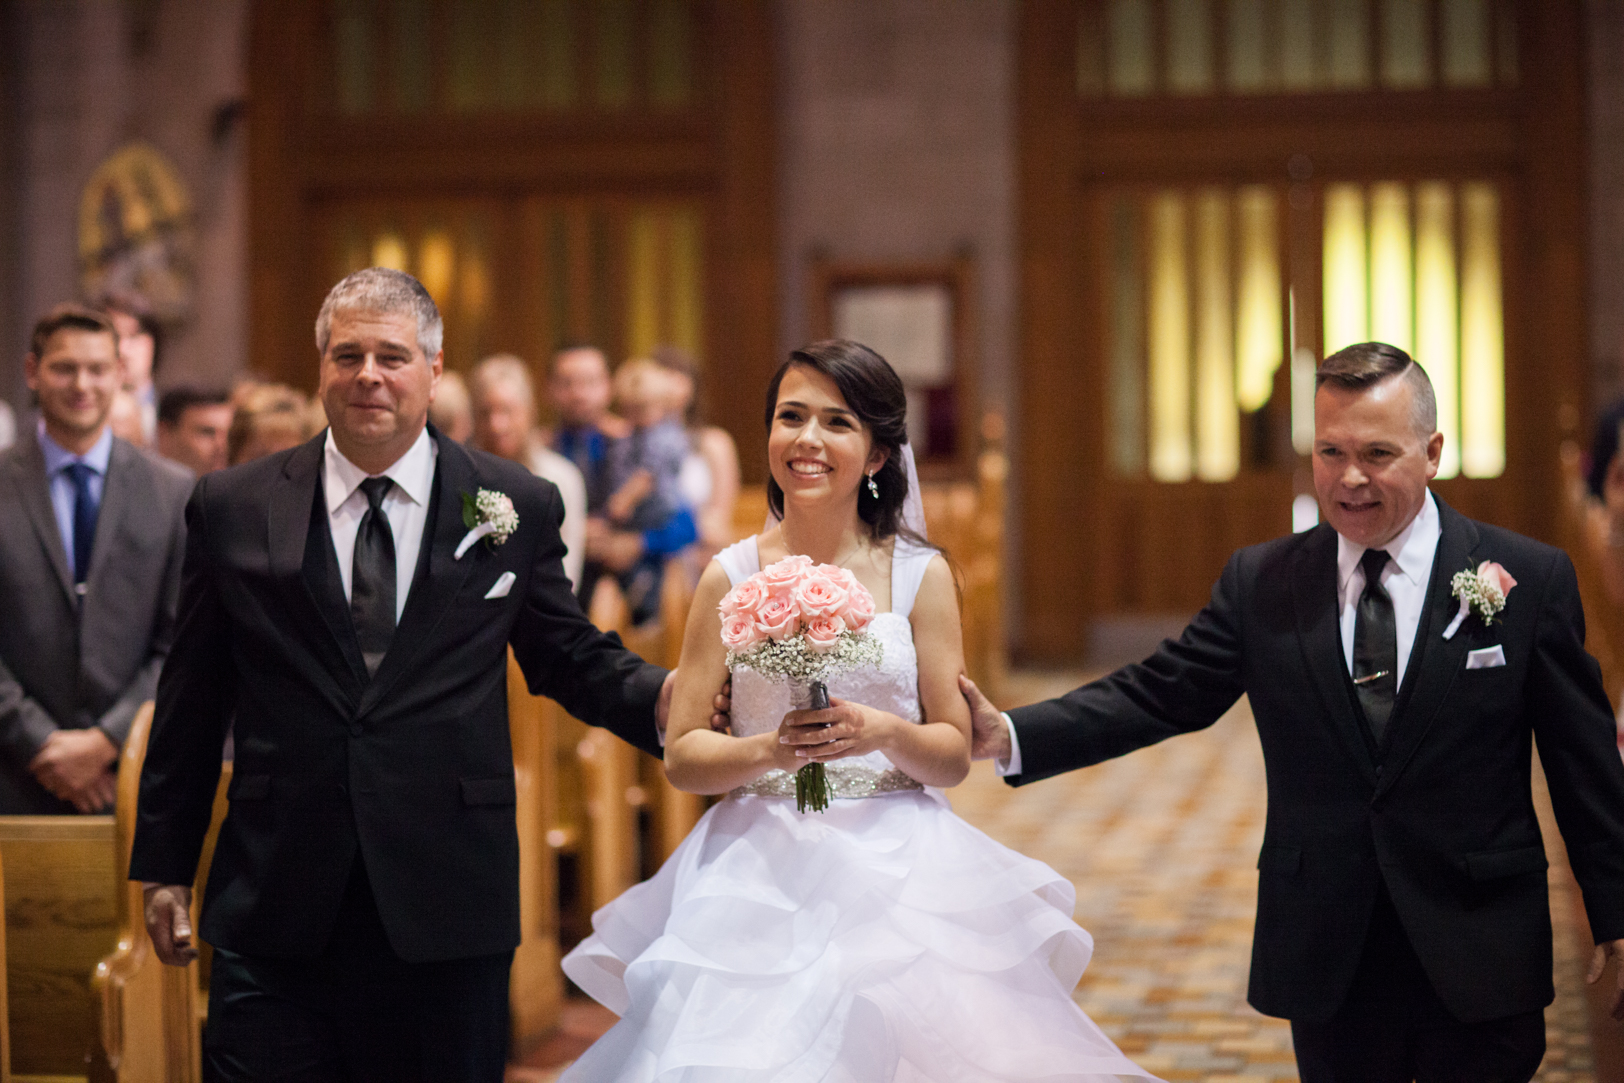 Elegant Edmonton Basilica Wedding - St Josephs Basilica Wedding.